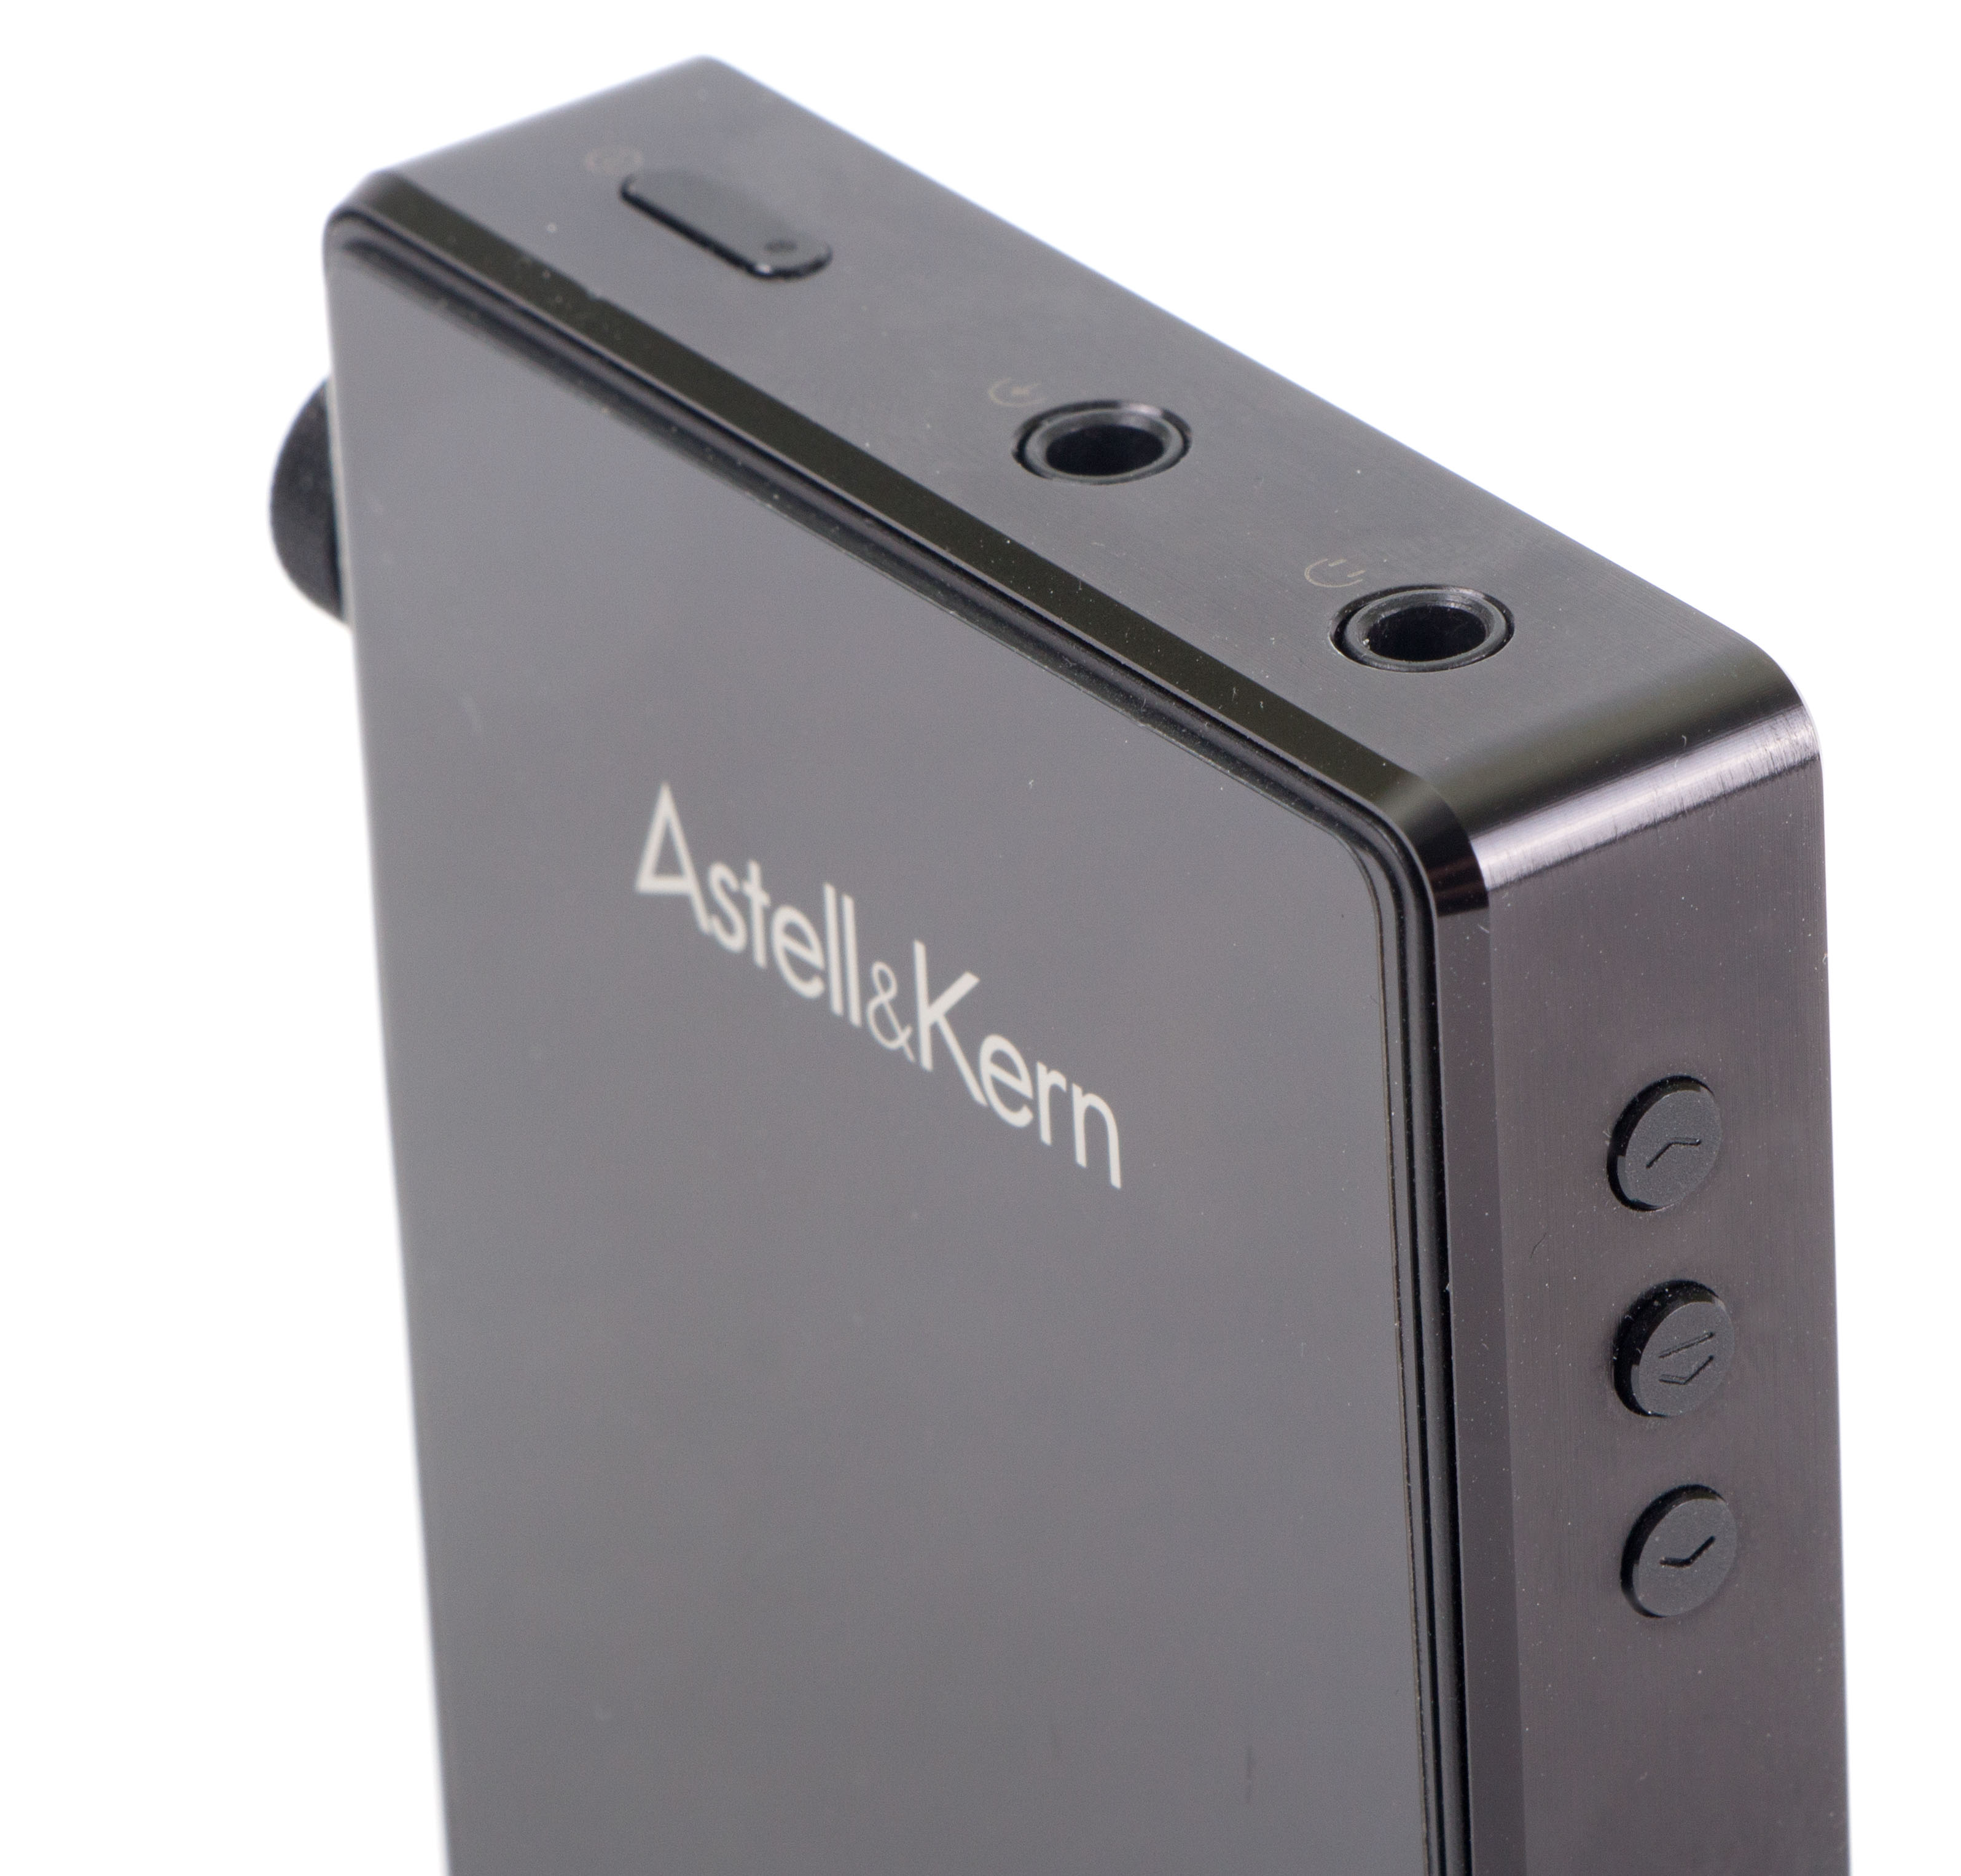 The Astell and Kern AK100 DAP Review